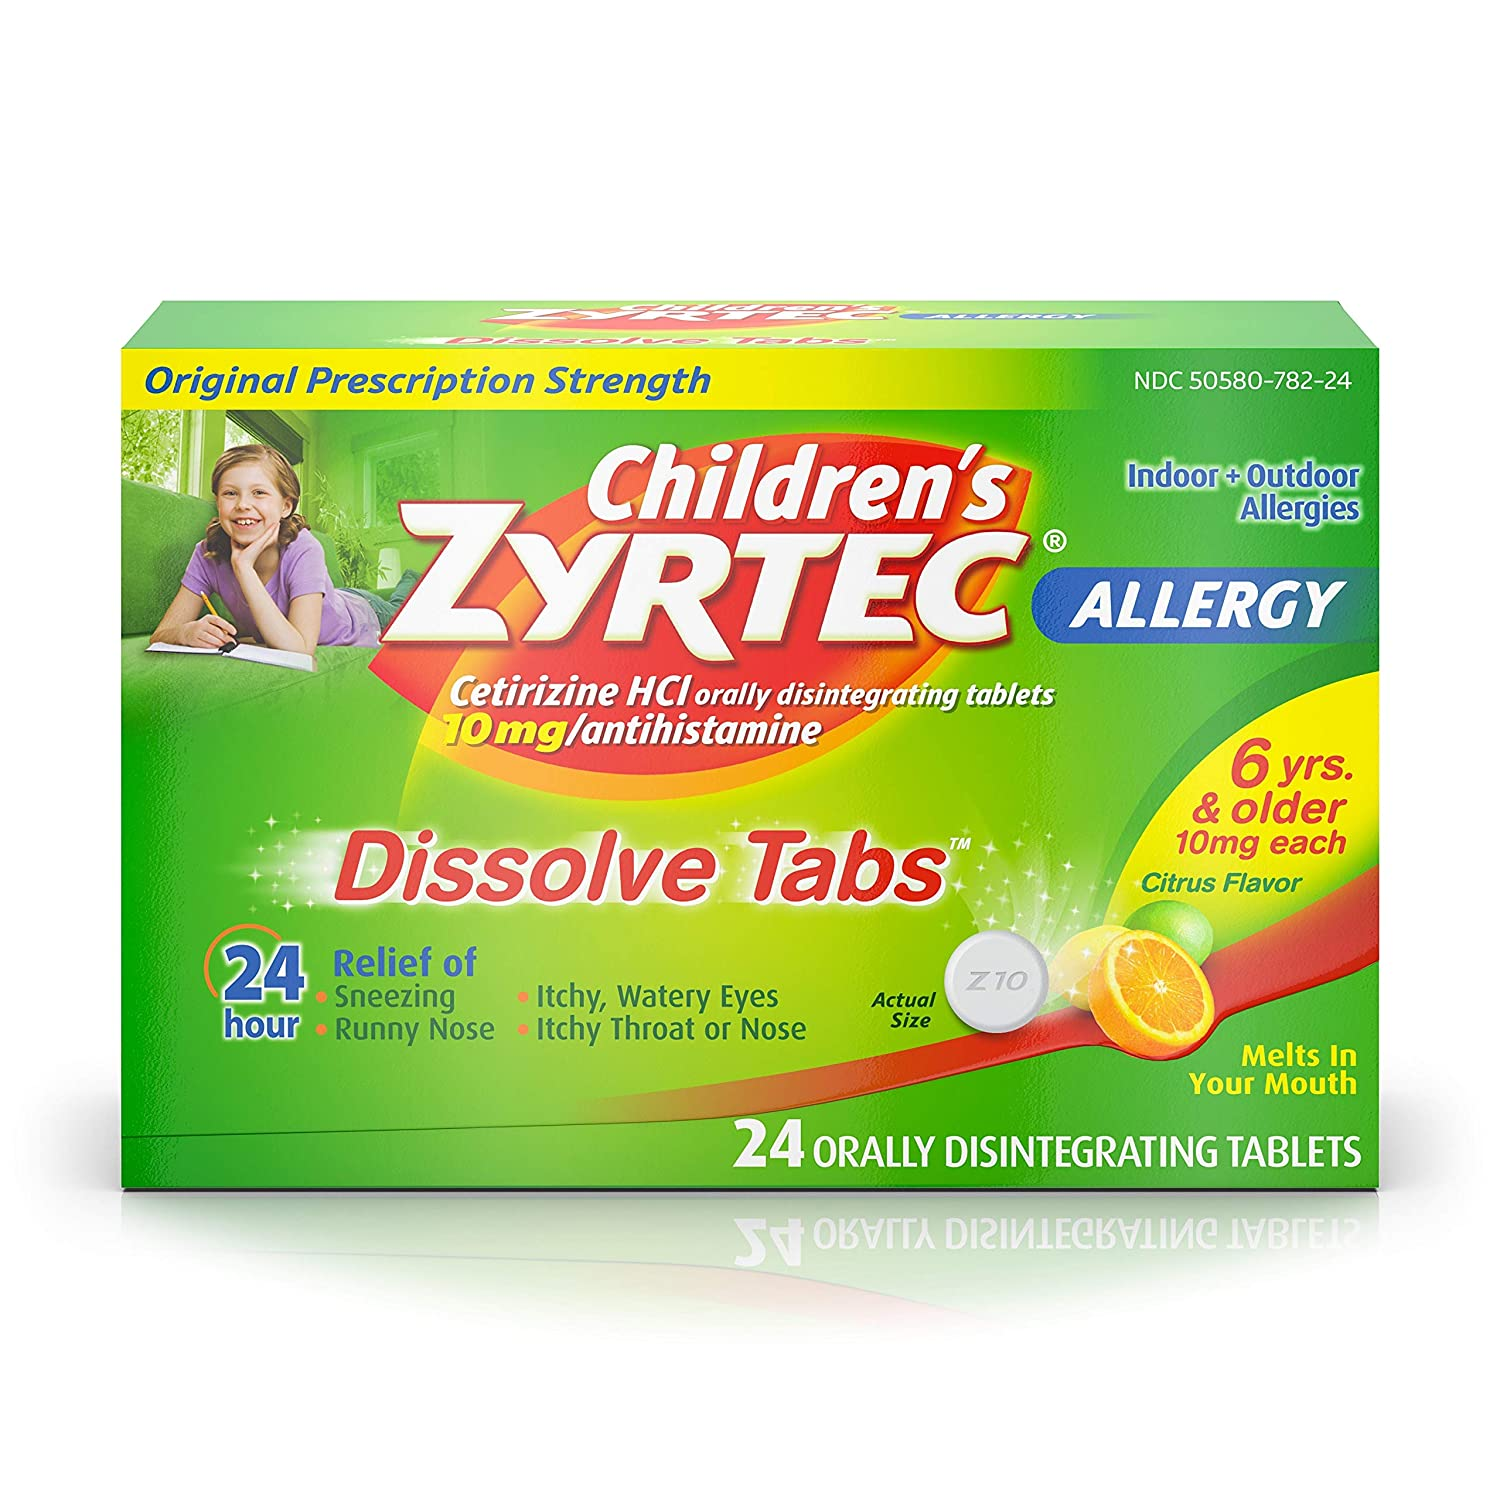 Children's Zyrtec 24 HR Dissolving Allergy Relief Tablets with Cetirizine, Citrus Flavored